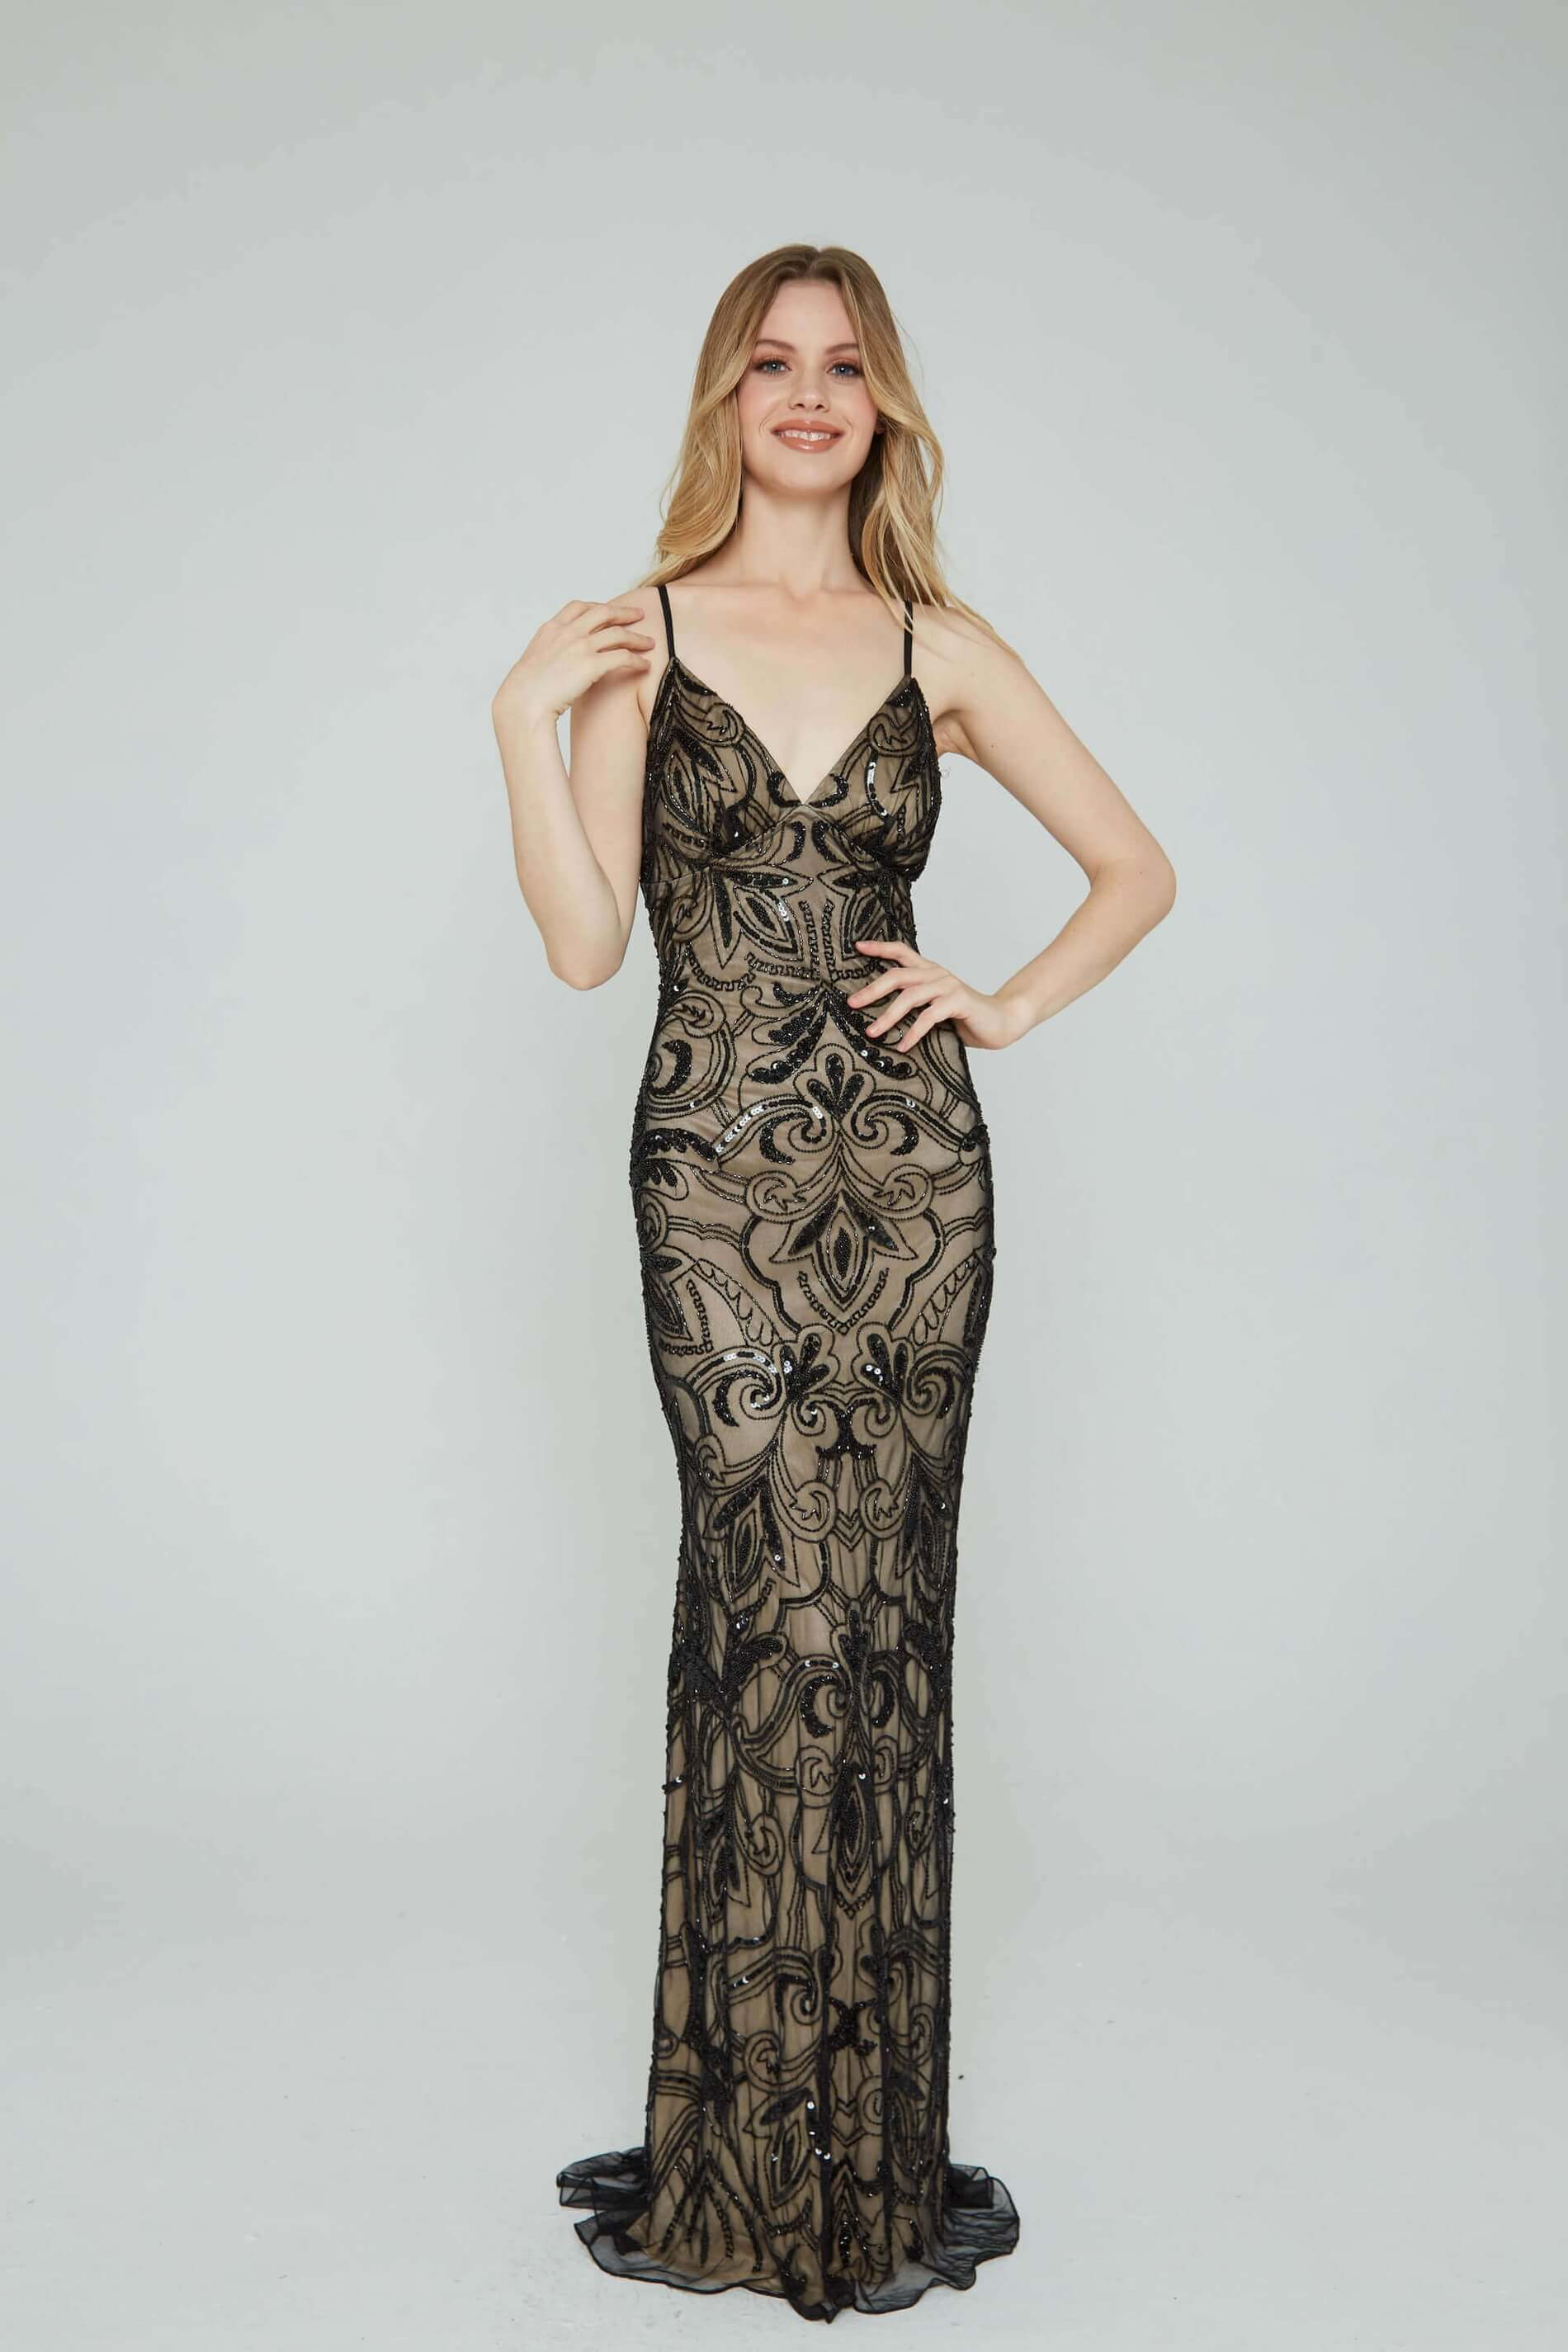 Style 196 Aleta Black Size 00 Prom Nude Tall Height Straight Dress on Queenly